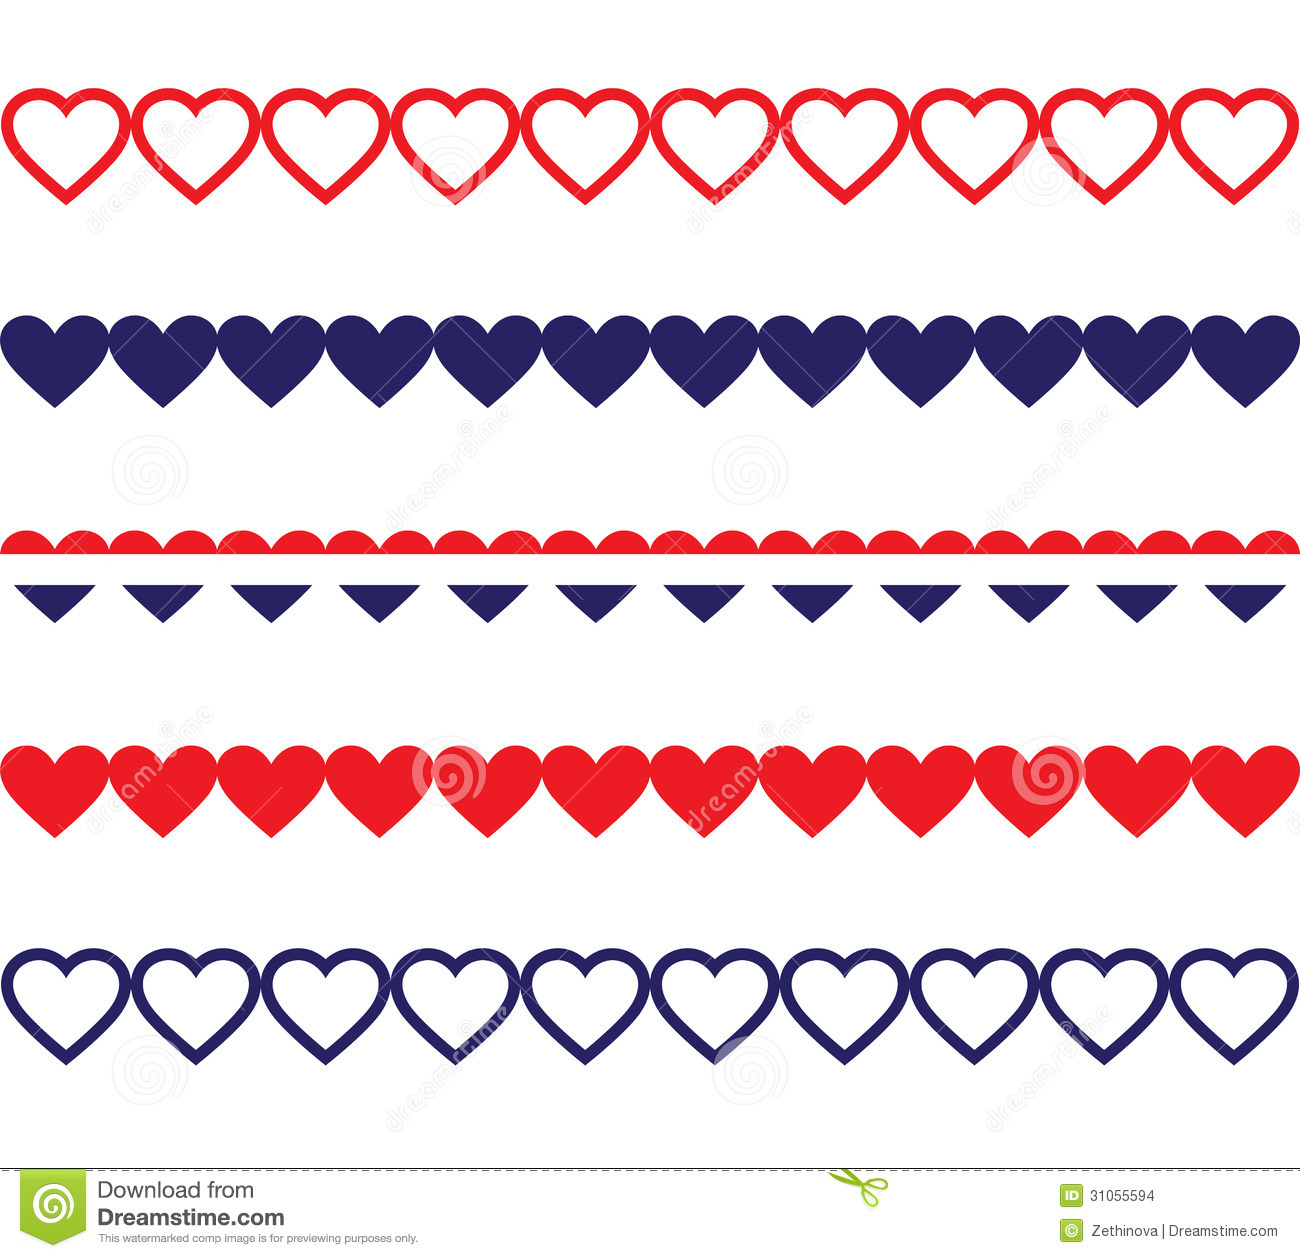 Clip Art Line Of Hearts : Patriotic heart borders stock images image